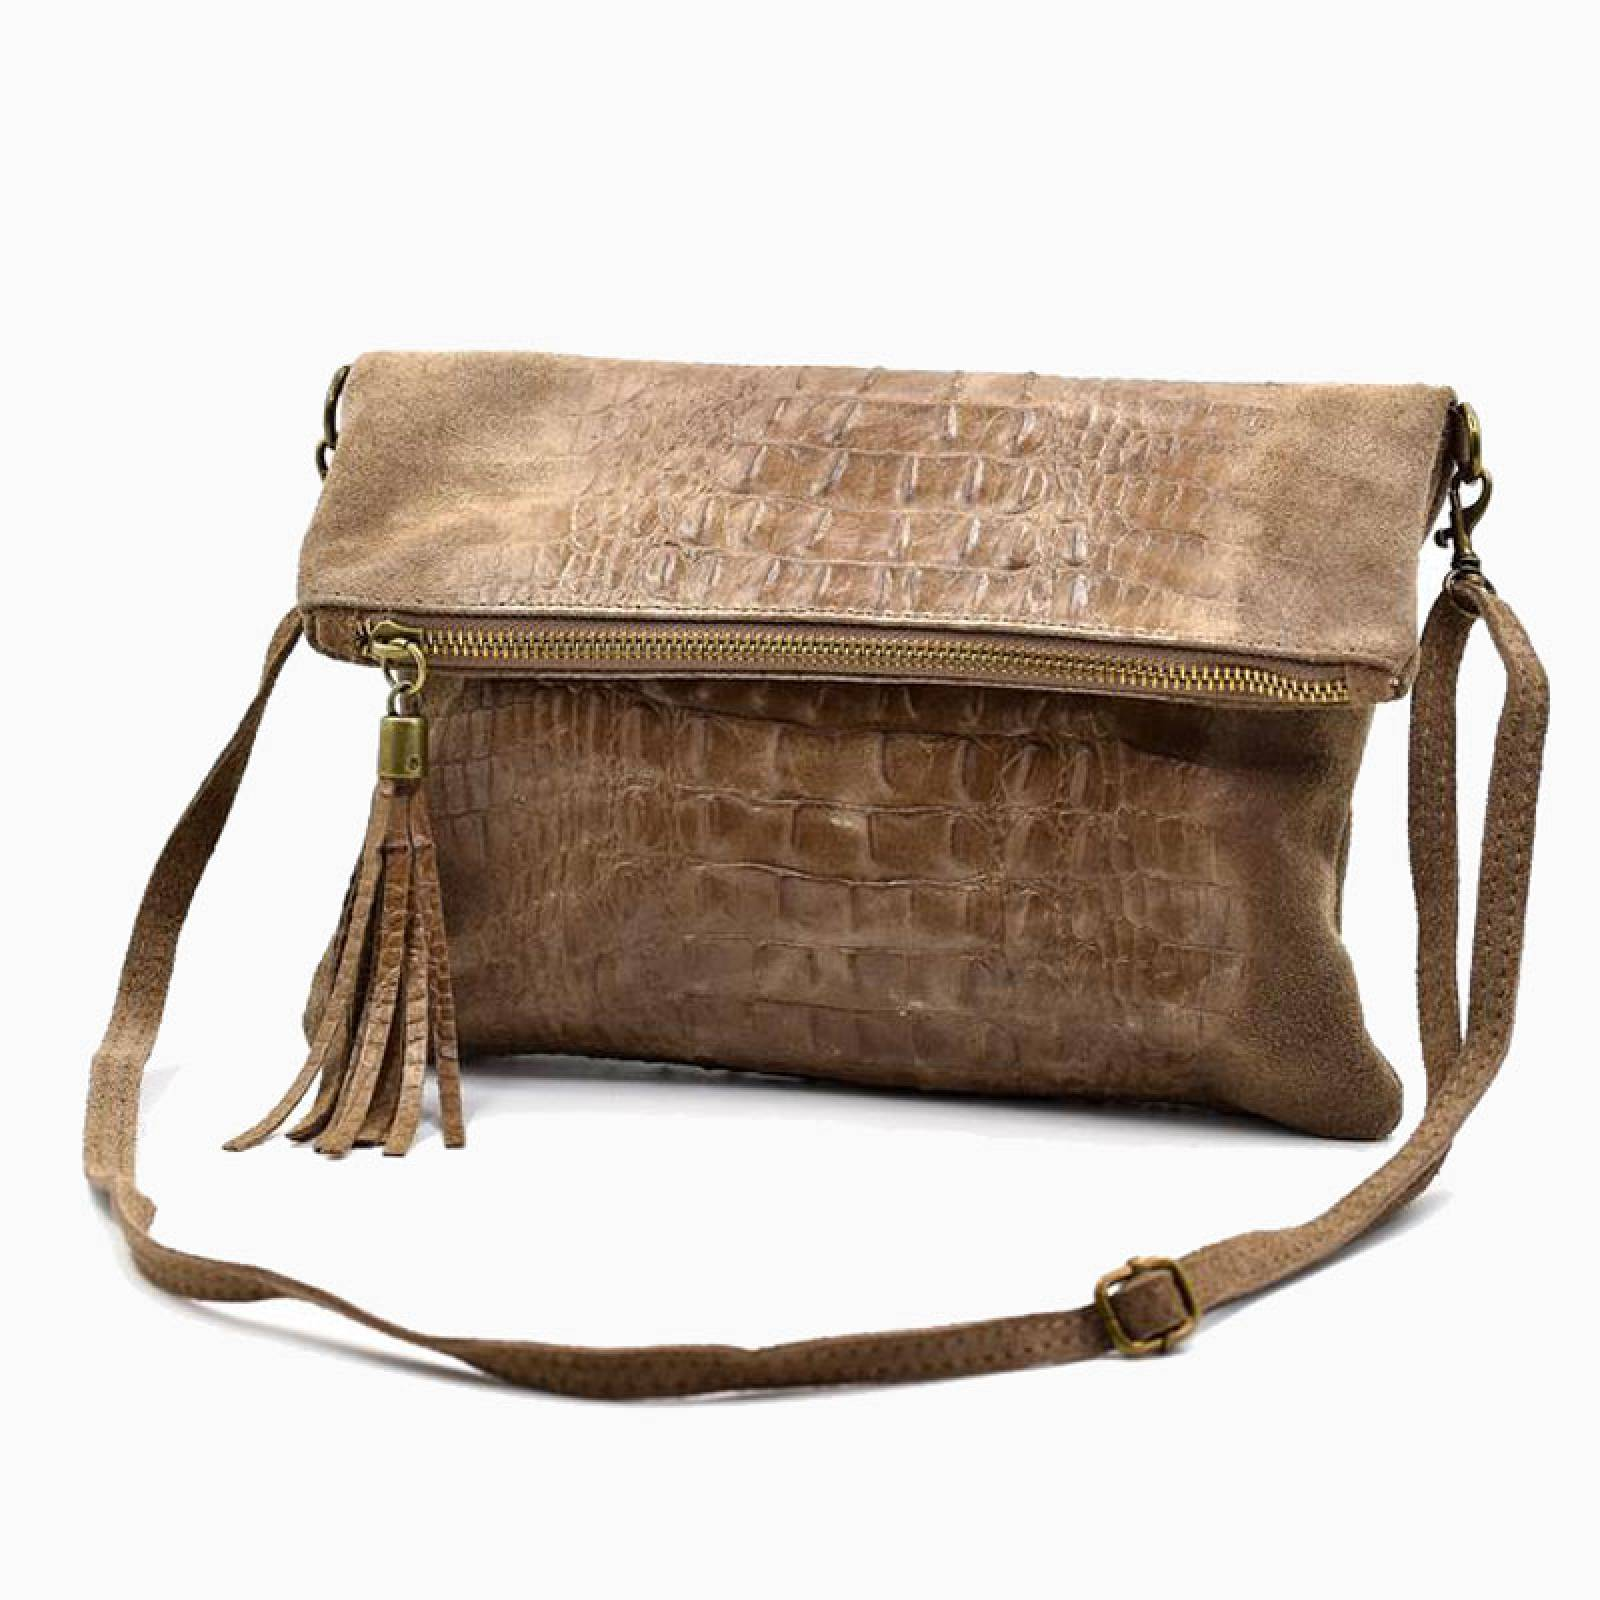 Suede Clutch/ Crossbody Bag With Croc Detail - Taupe thumbnails